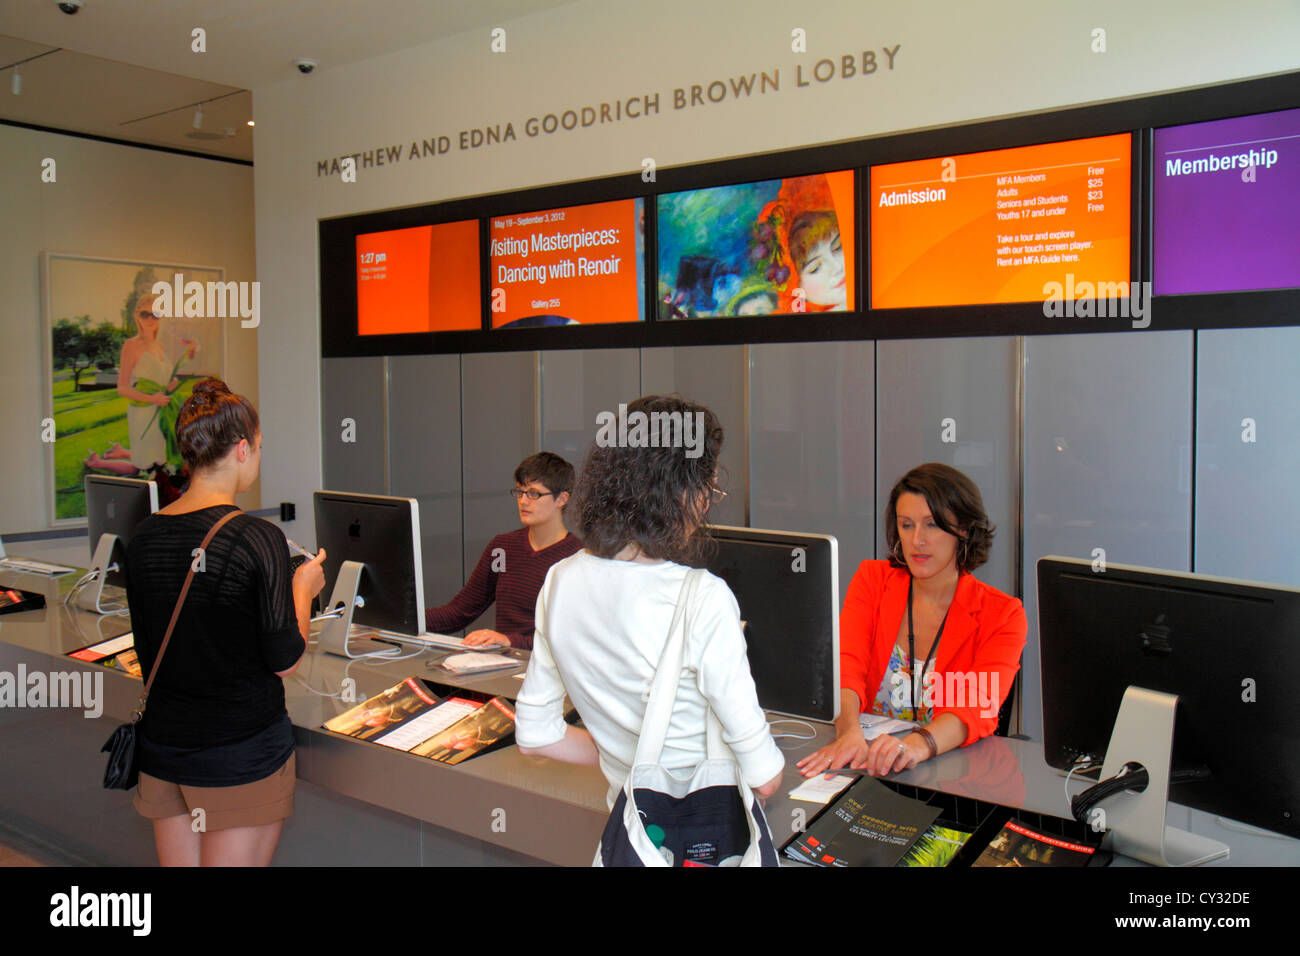 Boston Massachusetts Huntington Avenue Museum of Fine Arts lobby admissions desk ticket purchase woman - Stock Image